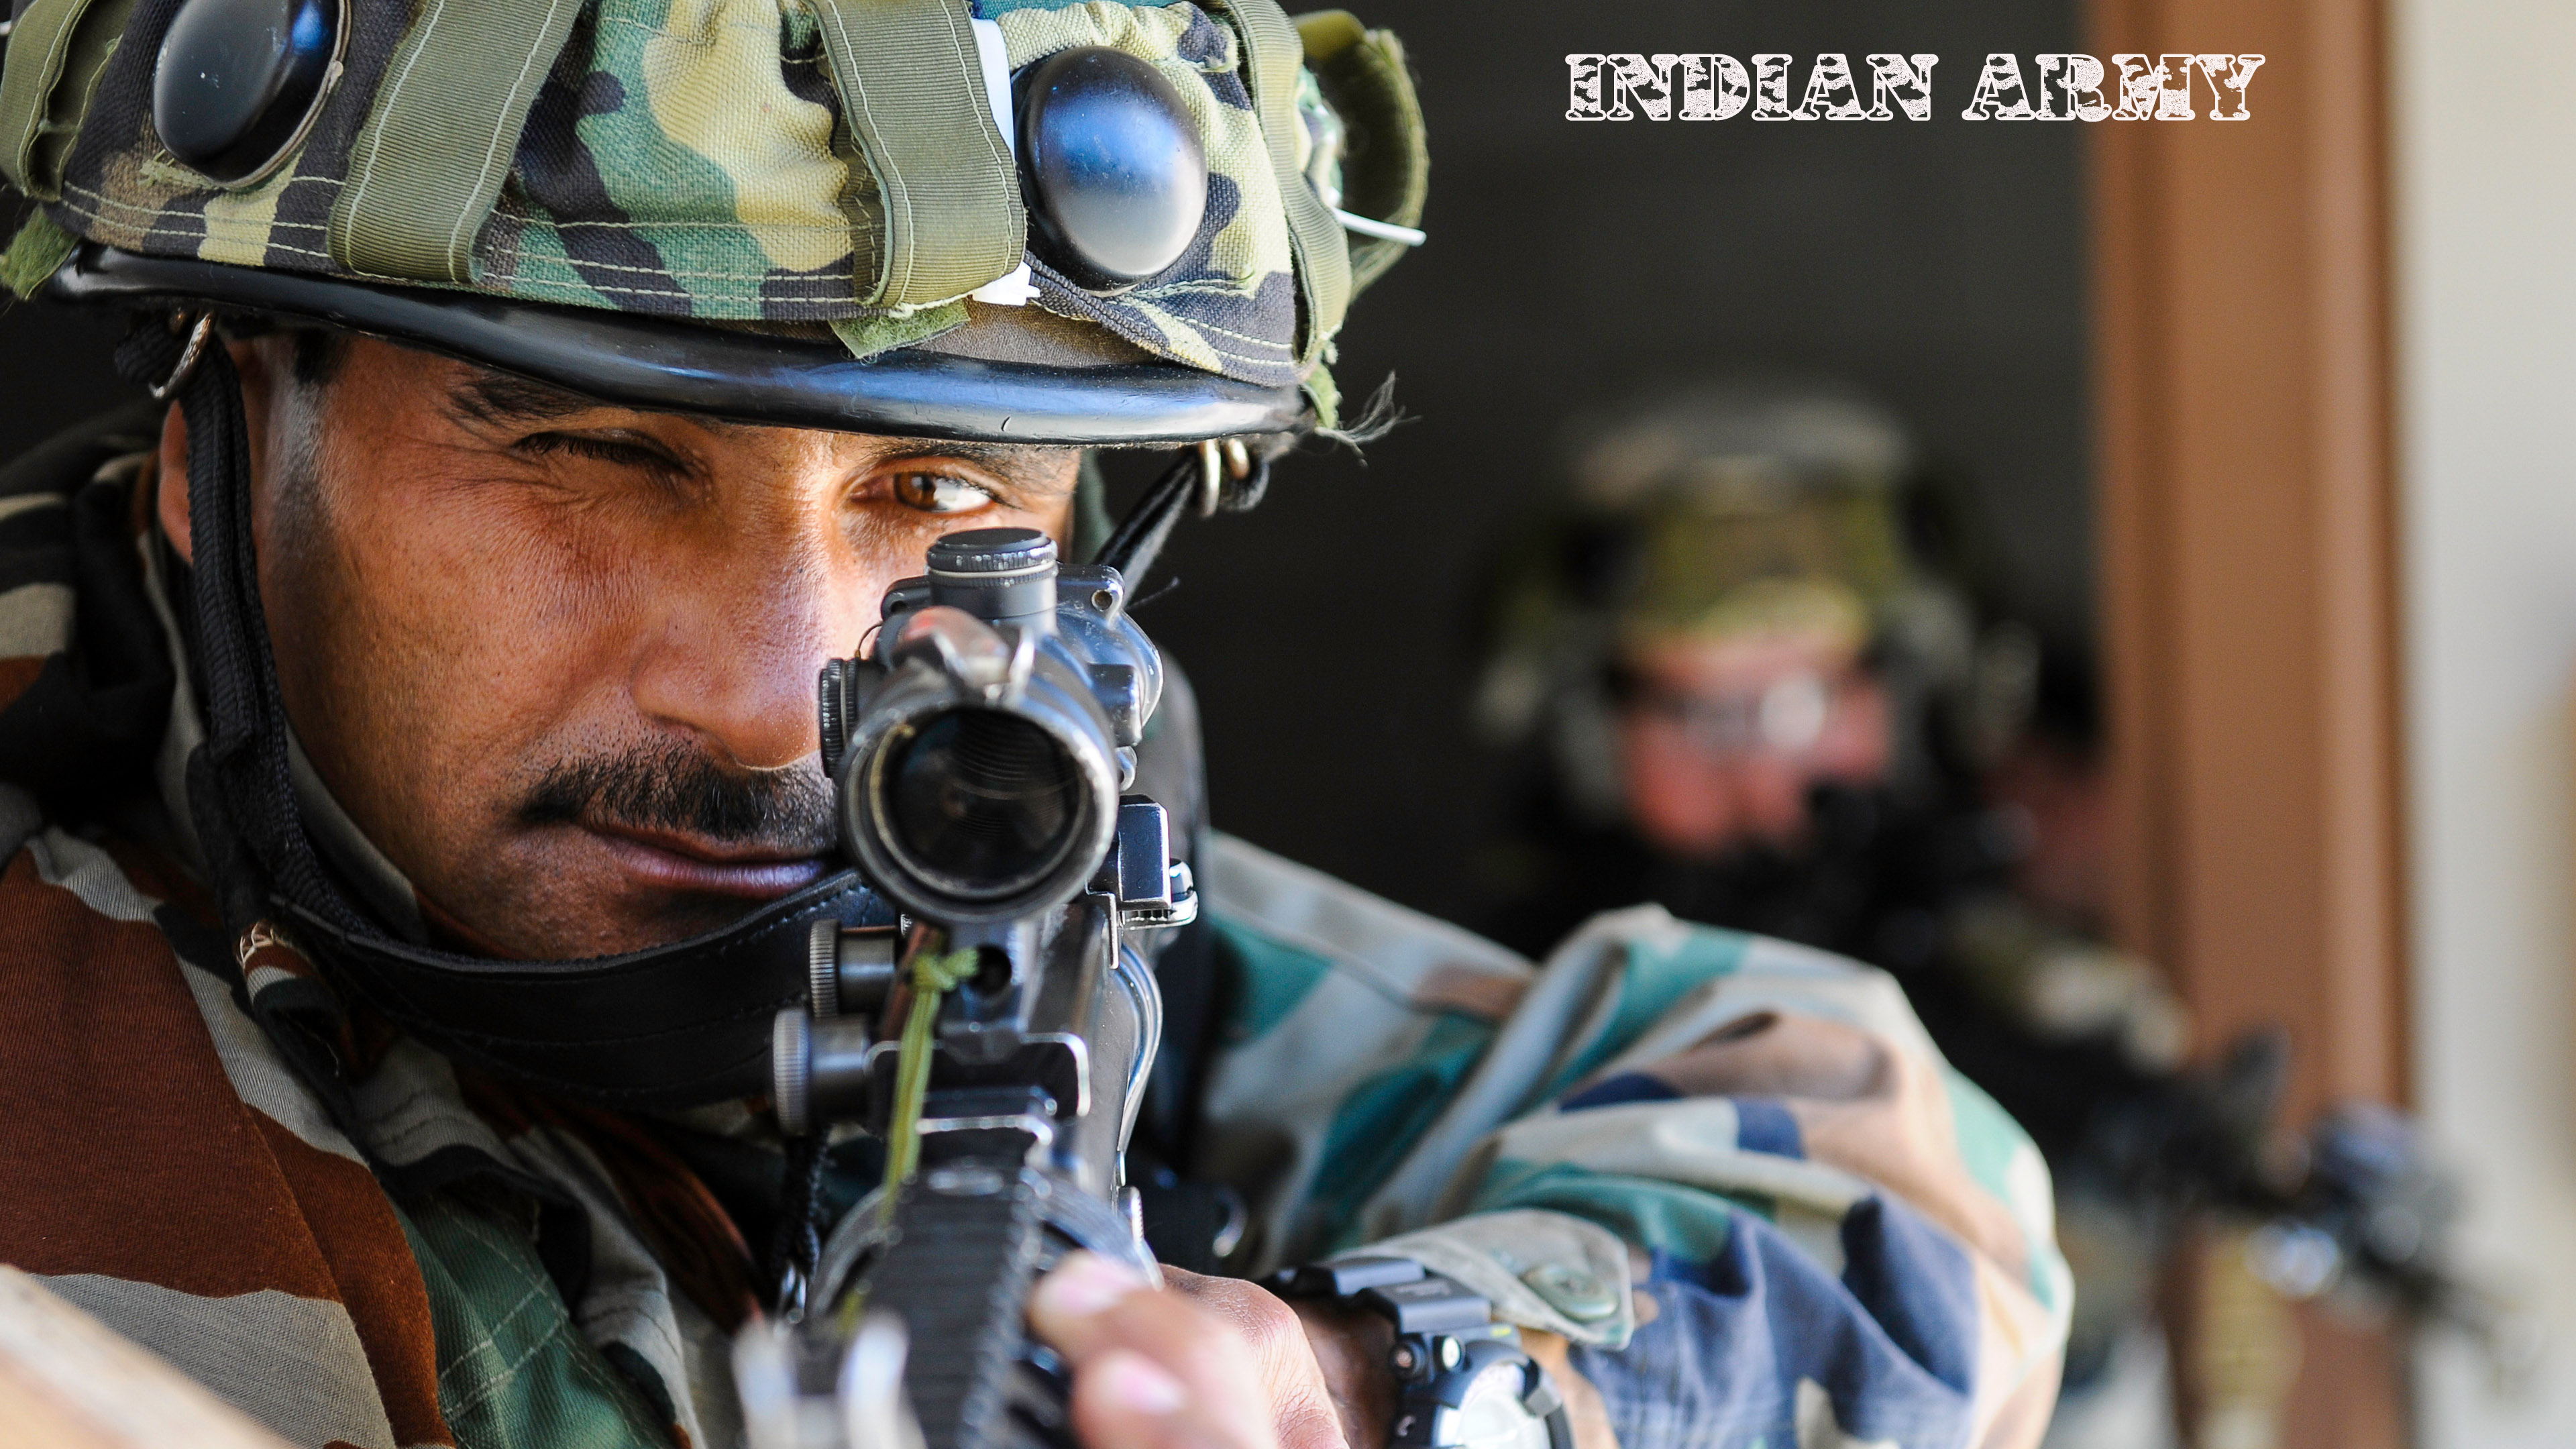 Indian Army Wallpaper In 4K Ultra HD